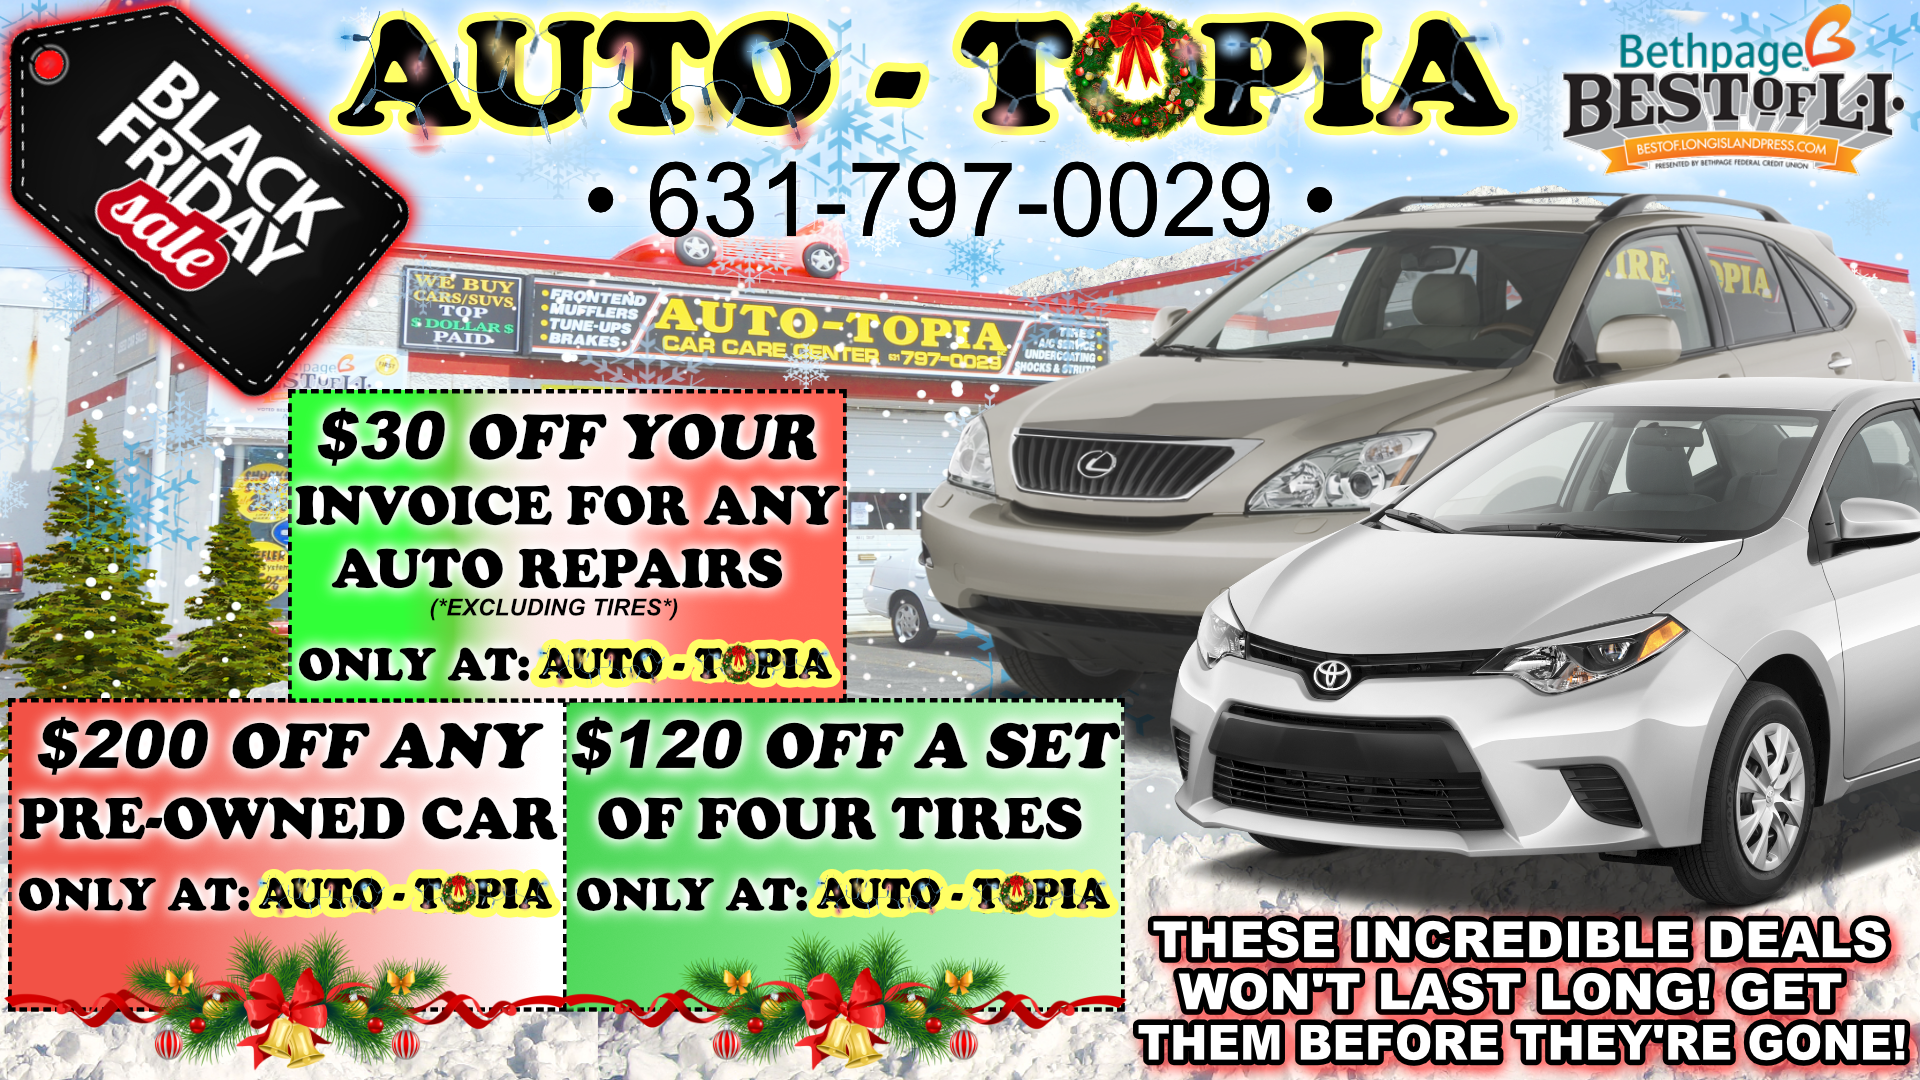 AUTO-TOPIA BLACK FRIDAY AD